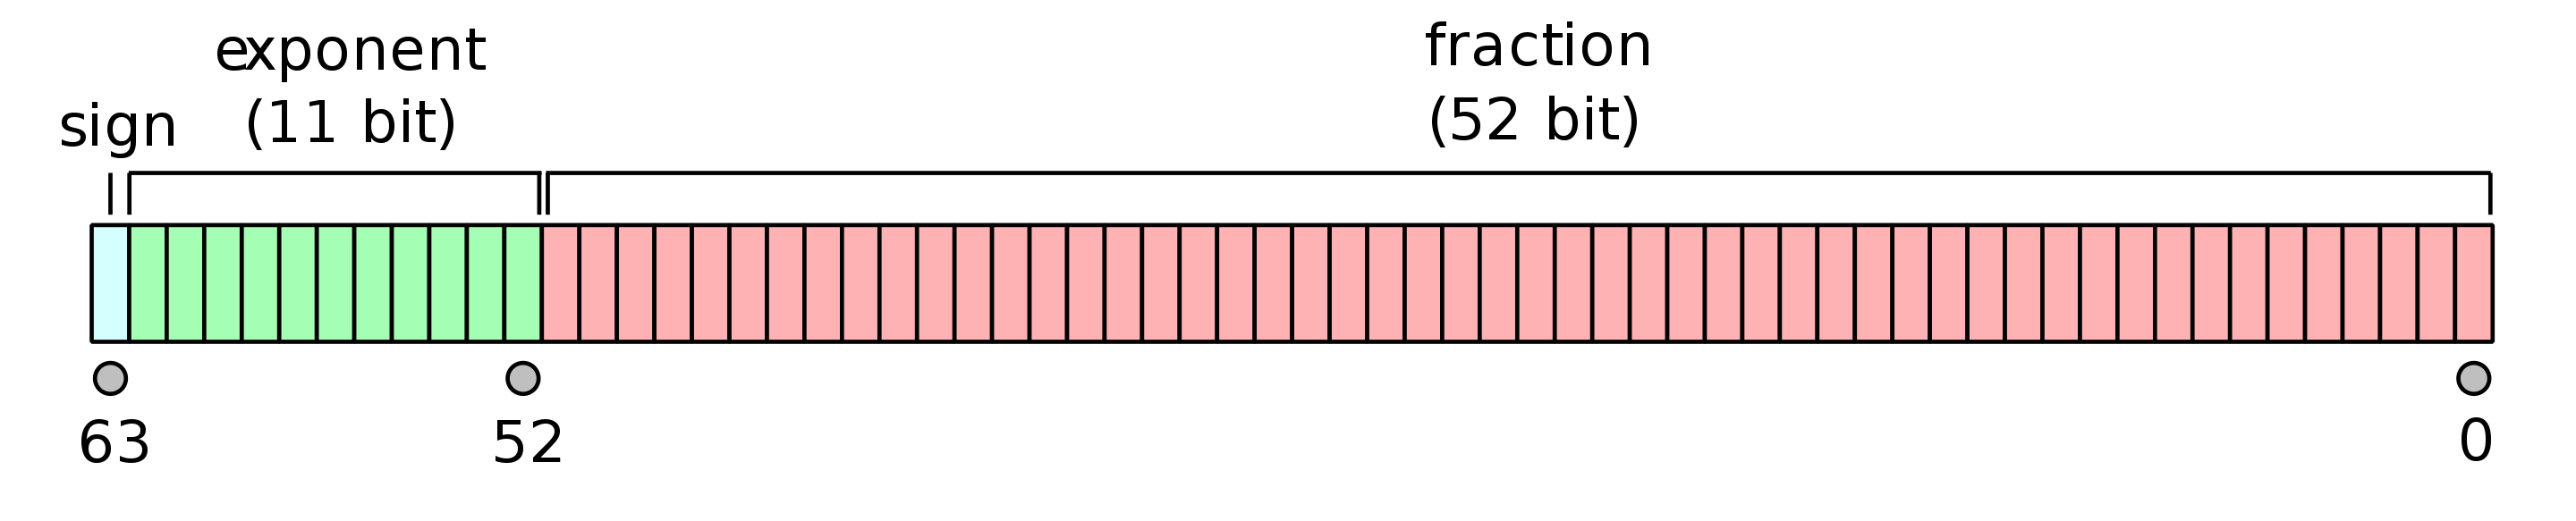 The double-precision floating-point format